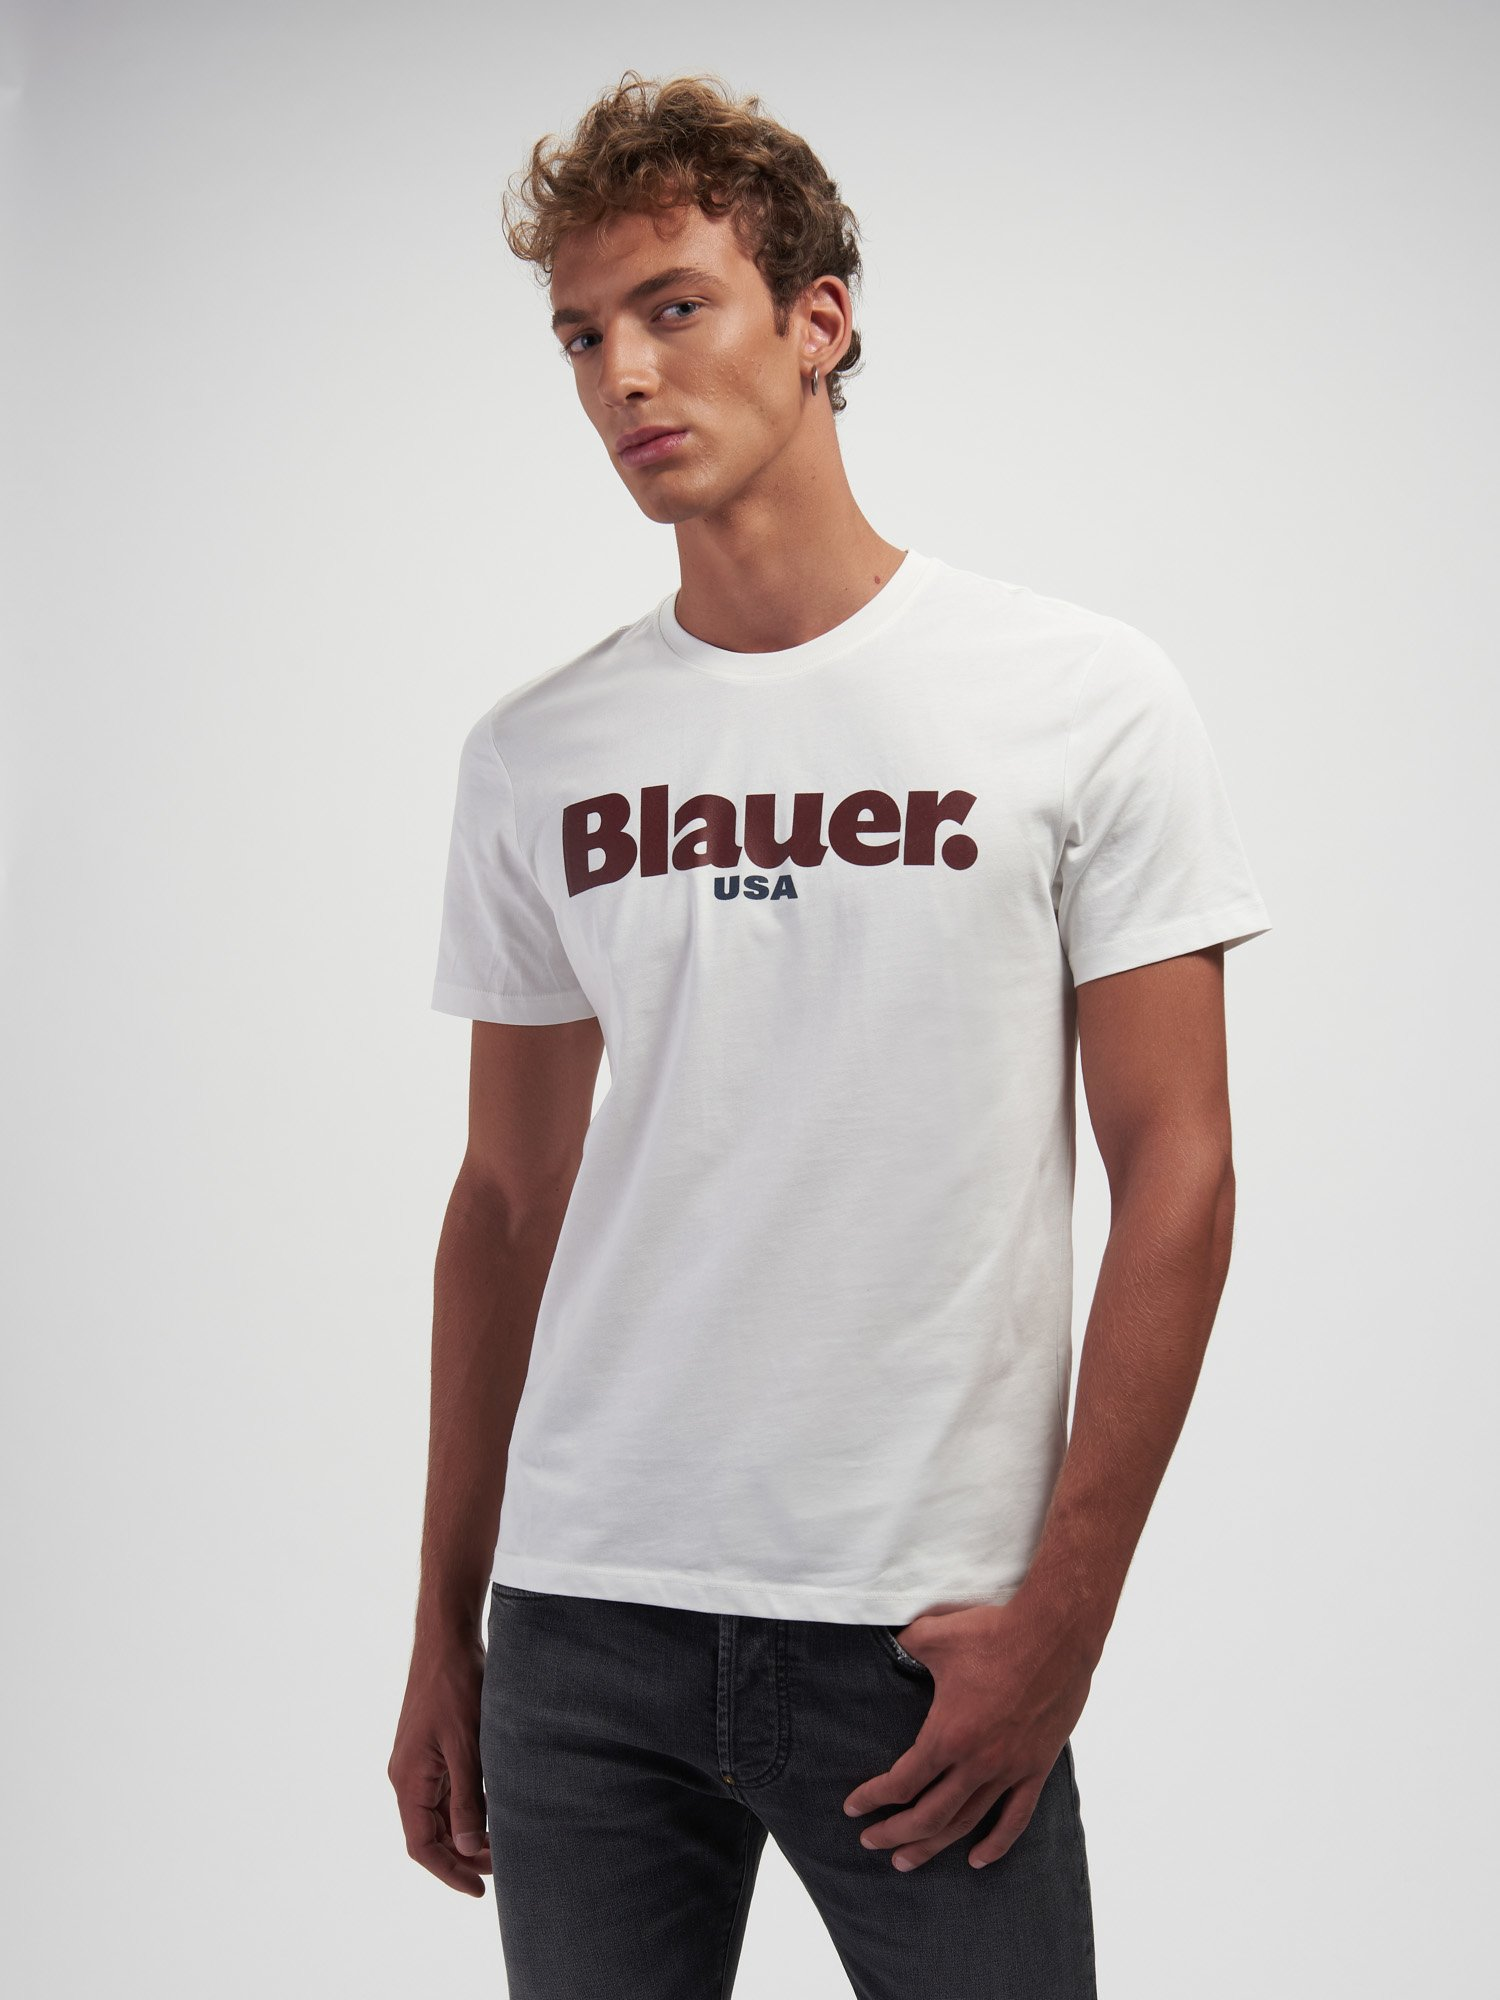 SHORT SLEEVE TWO-TONE LOGO T-SHIRT - Blauer